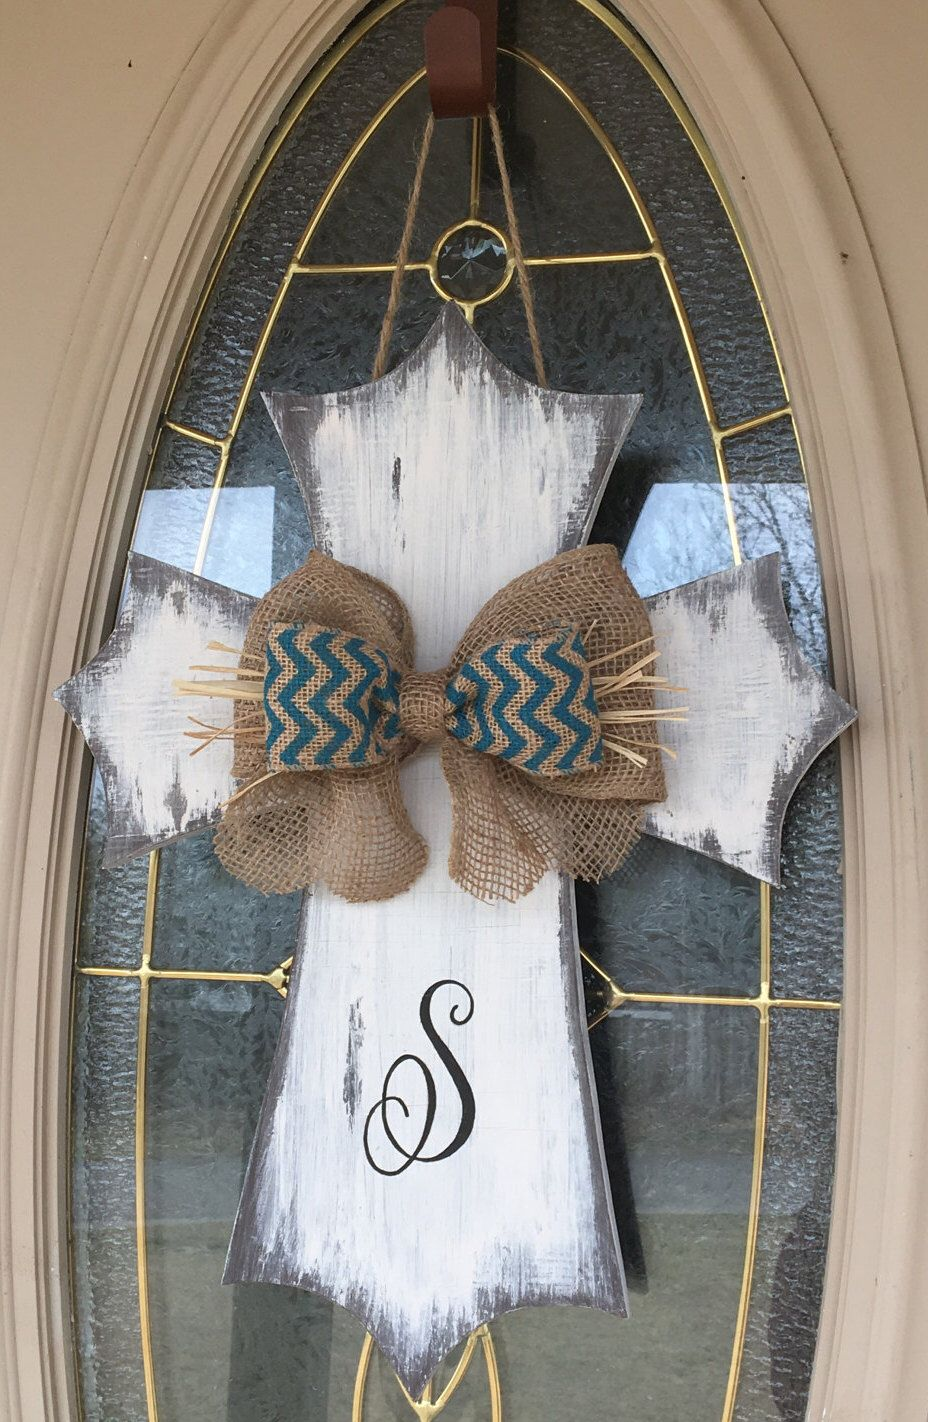 Distressed Rustic Wooden Cross Door Hanger Monogrammed Burlap Bow Easter Wall Decor Easter Home Office Decor Birthday Gift Housewarming Gift Cross Door Hangers Wood Door Hangers Painted Wooden Crosses